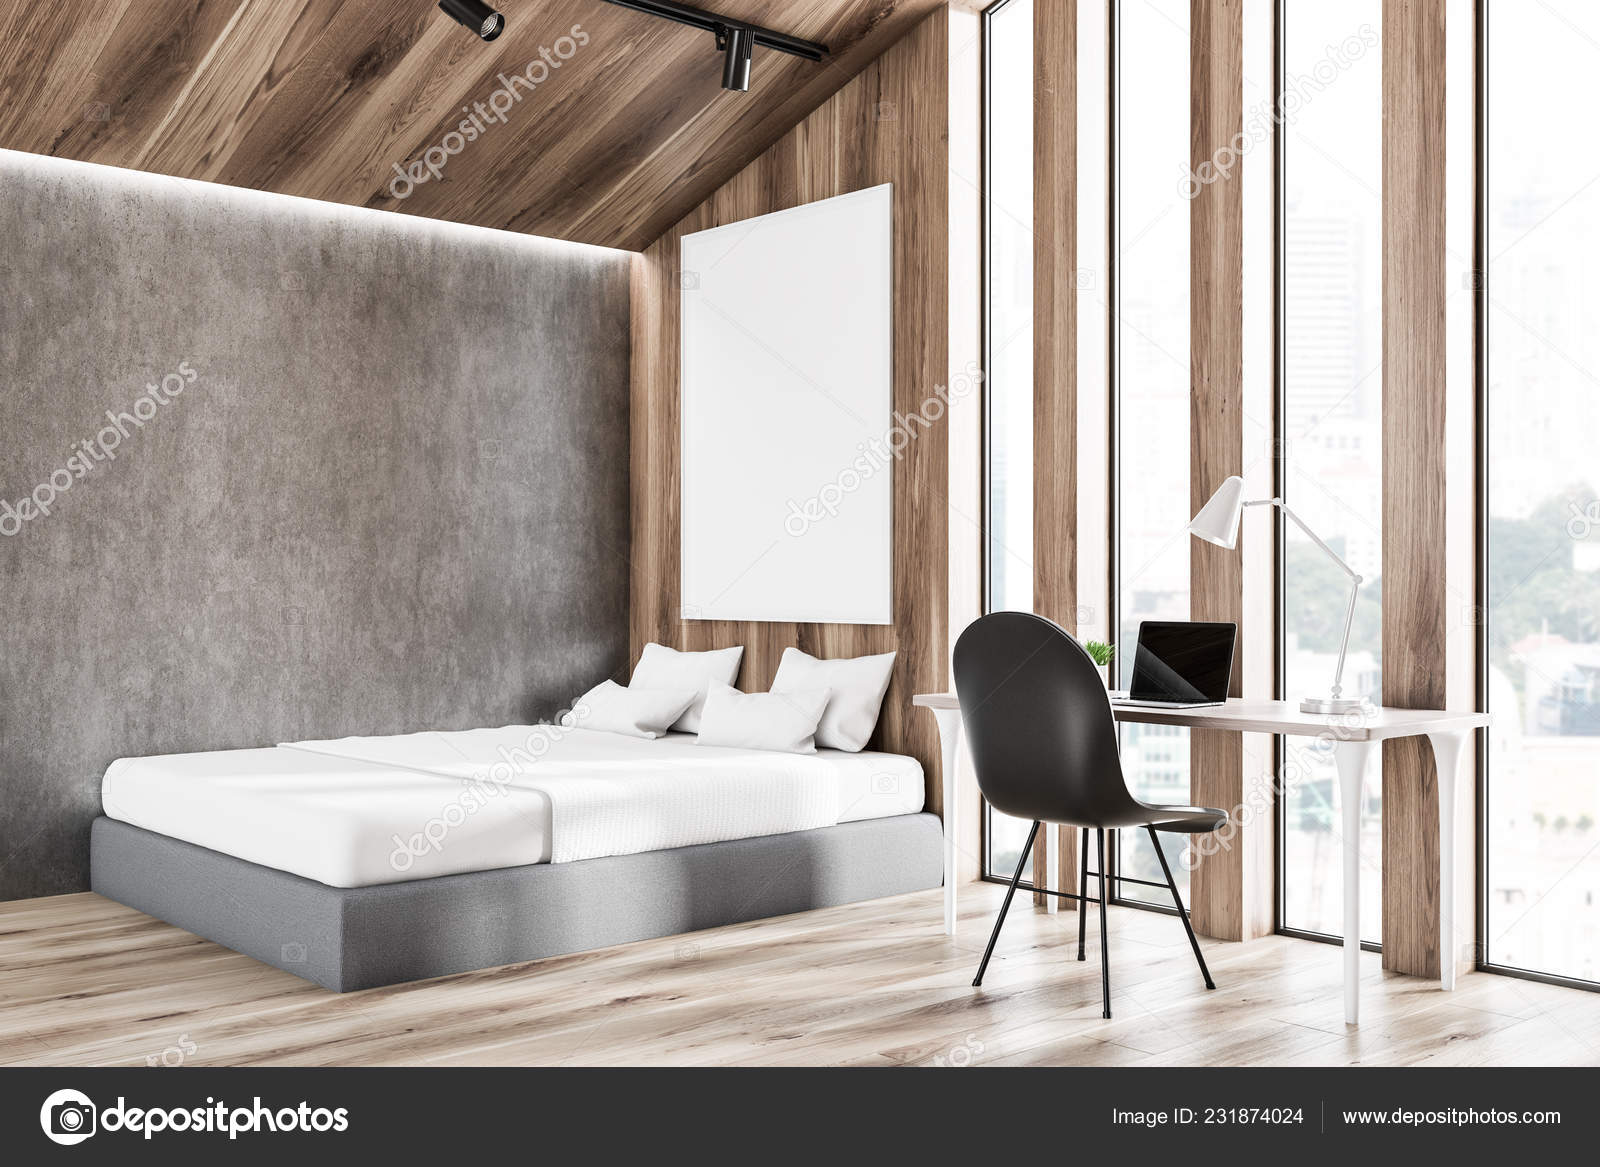 Light Wood Floors Gray Walls Corner Attic Bedroom Light Wooden Concrete Walls Wooden Floor Gray